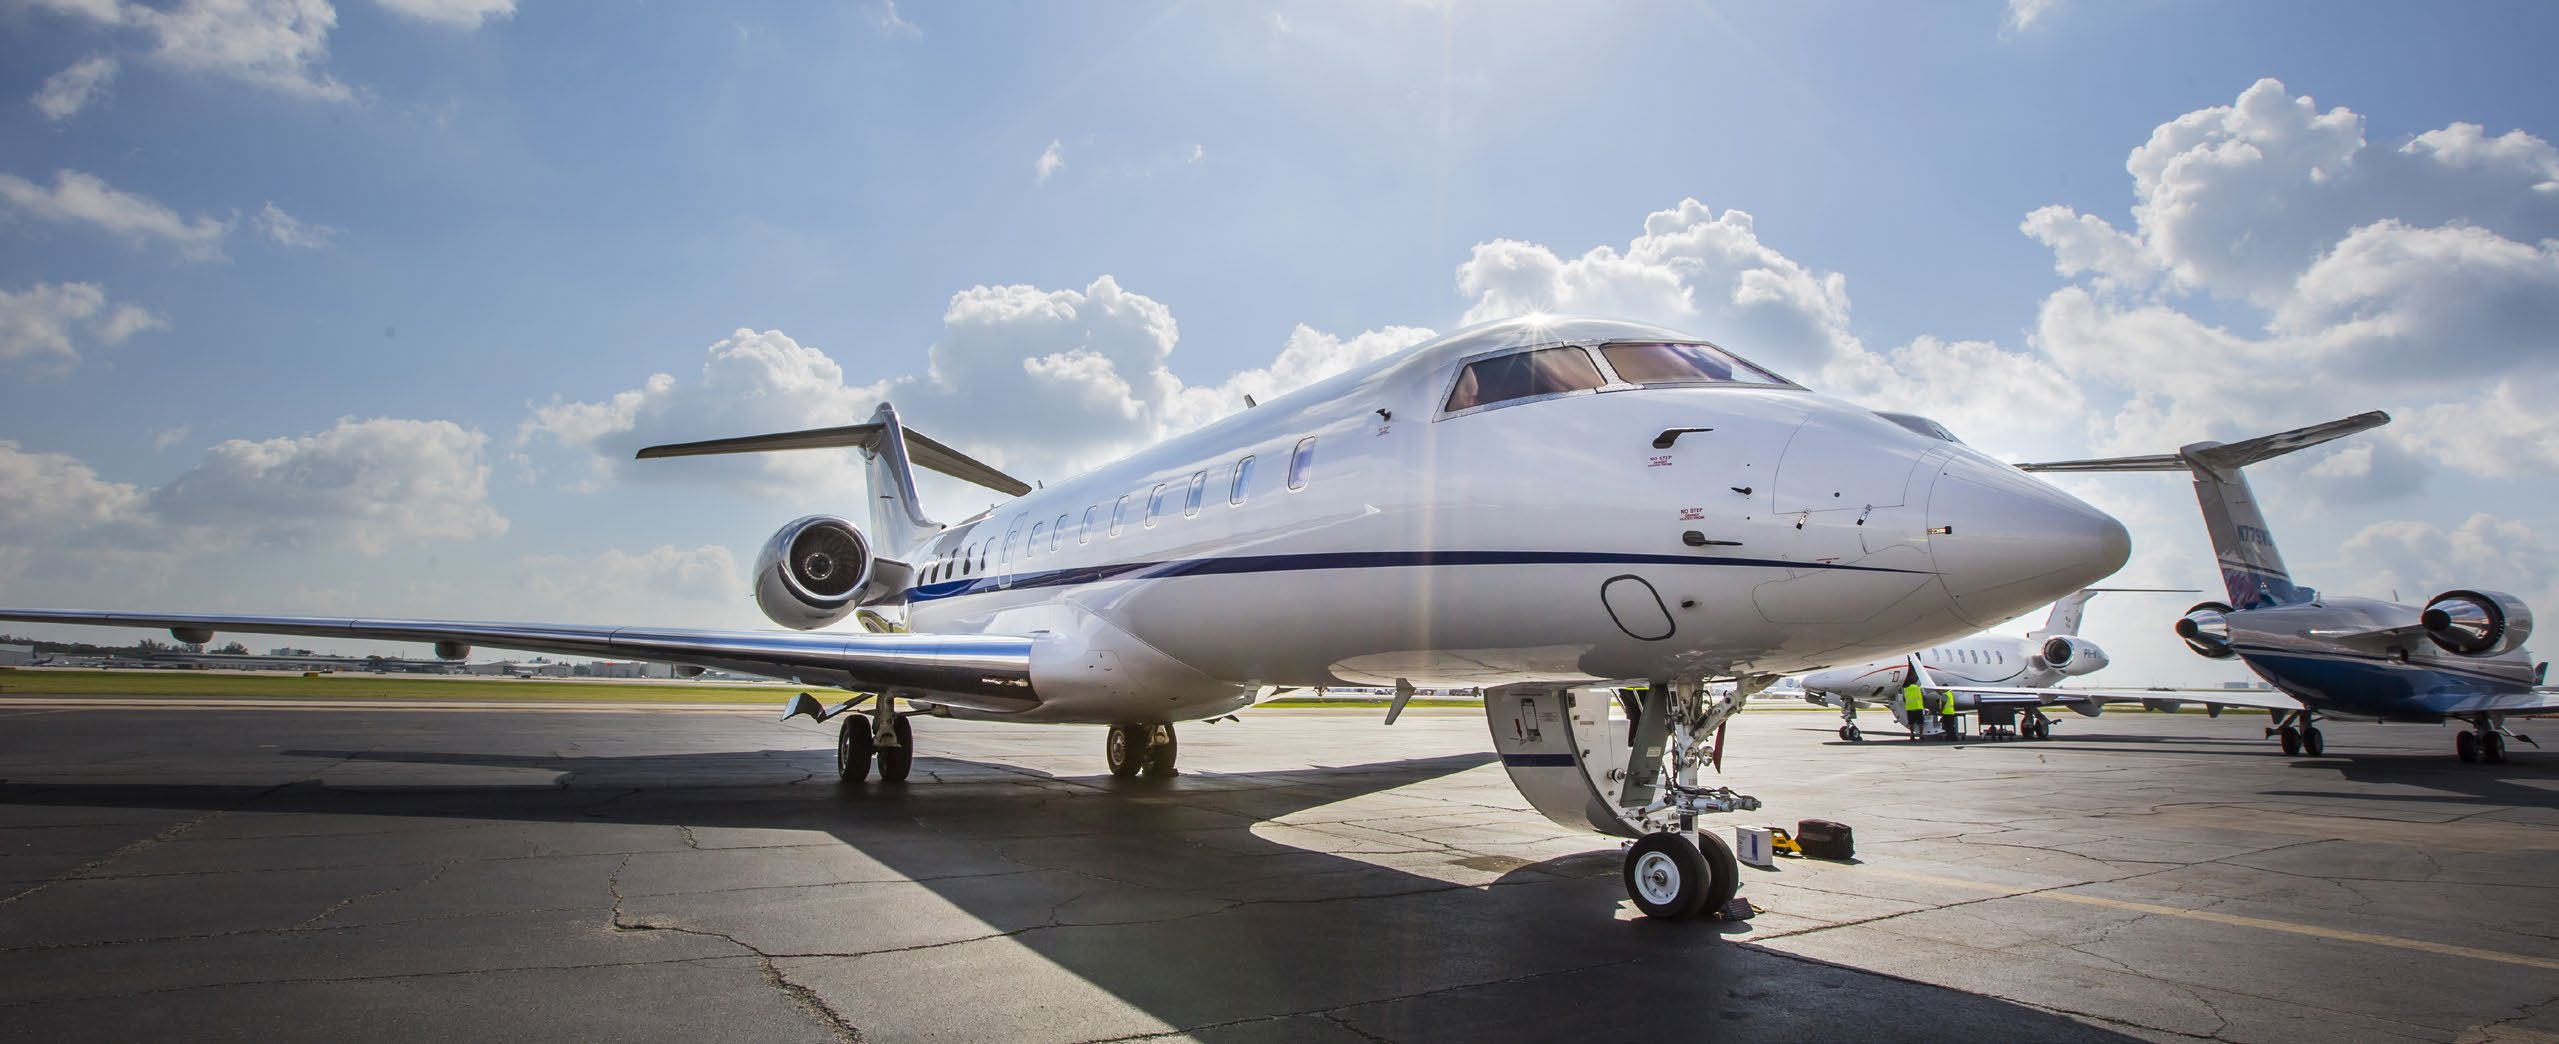 Global 5000 Bombardier